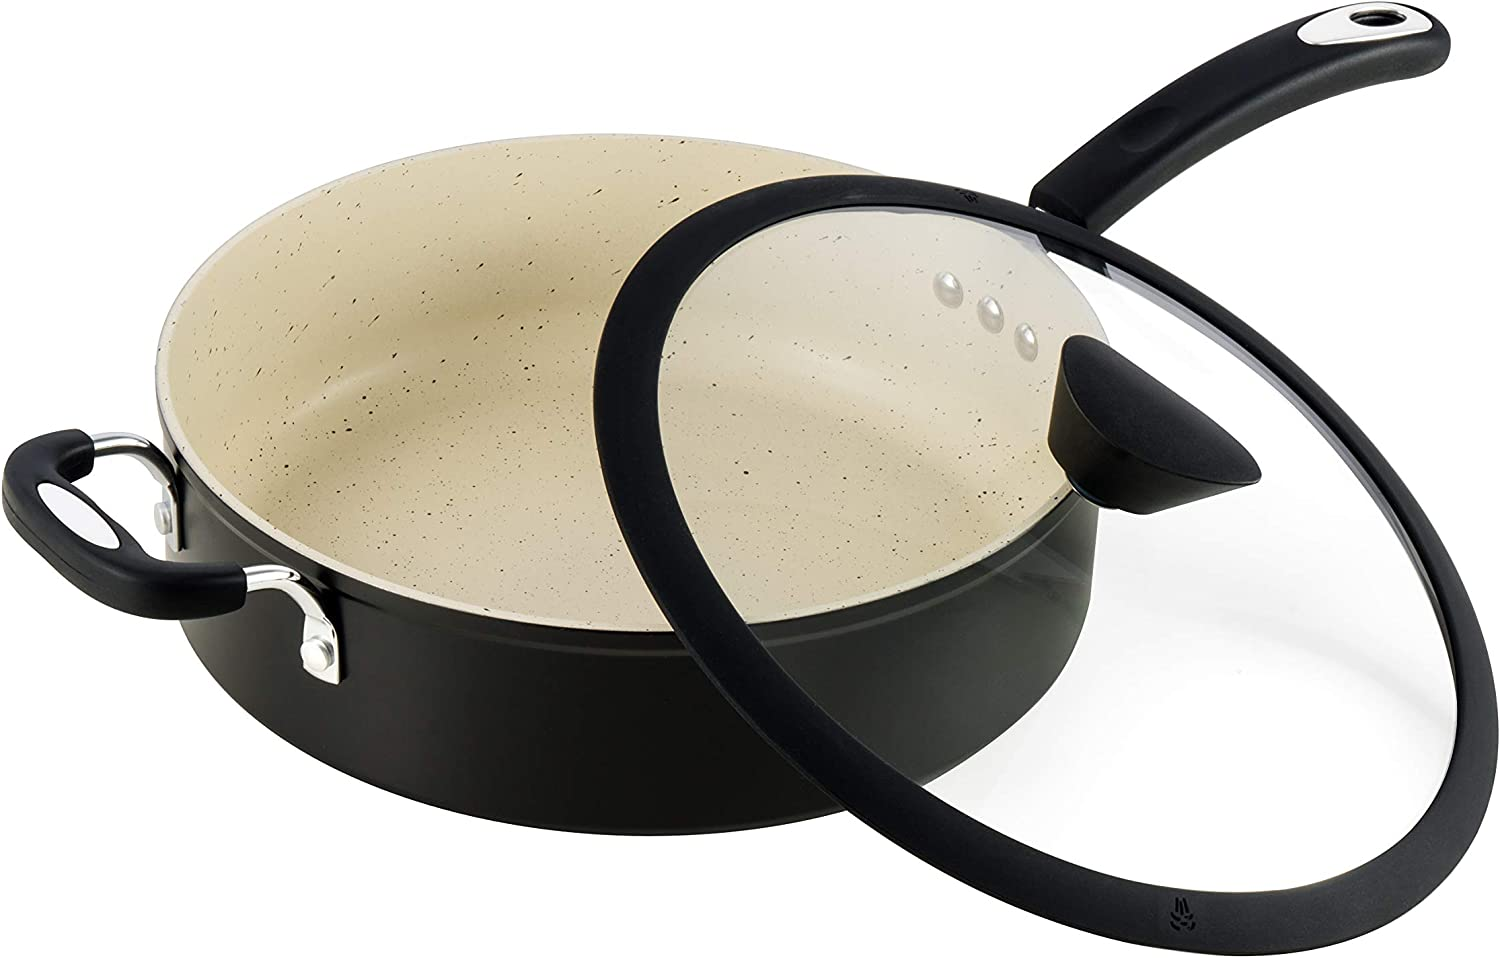 Ozeri Stone Earth All-in-One Sauce Pan 100% APEO, GenX, PFBS, PFOS, PFOA, NMP and NEP-Free German-Made Coating, 5 L (5.3 Quart), Lava Black